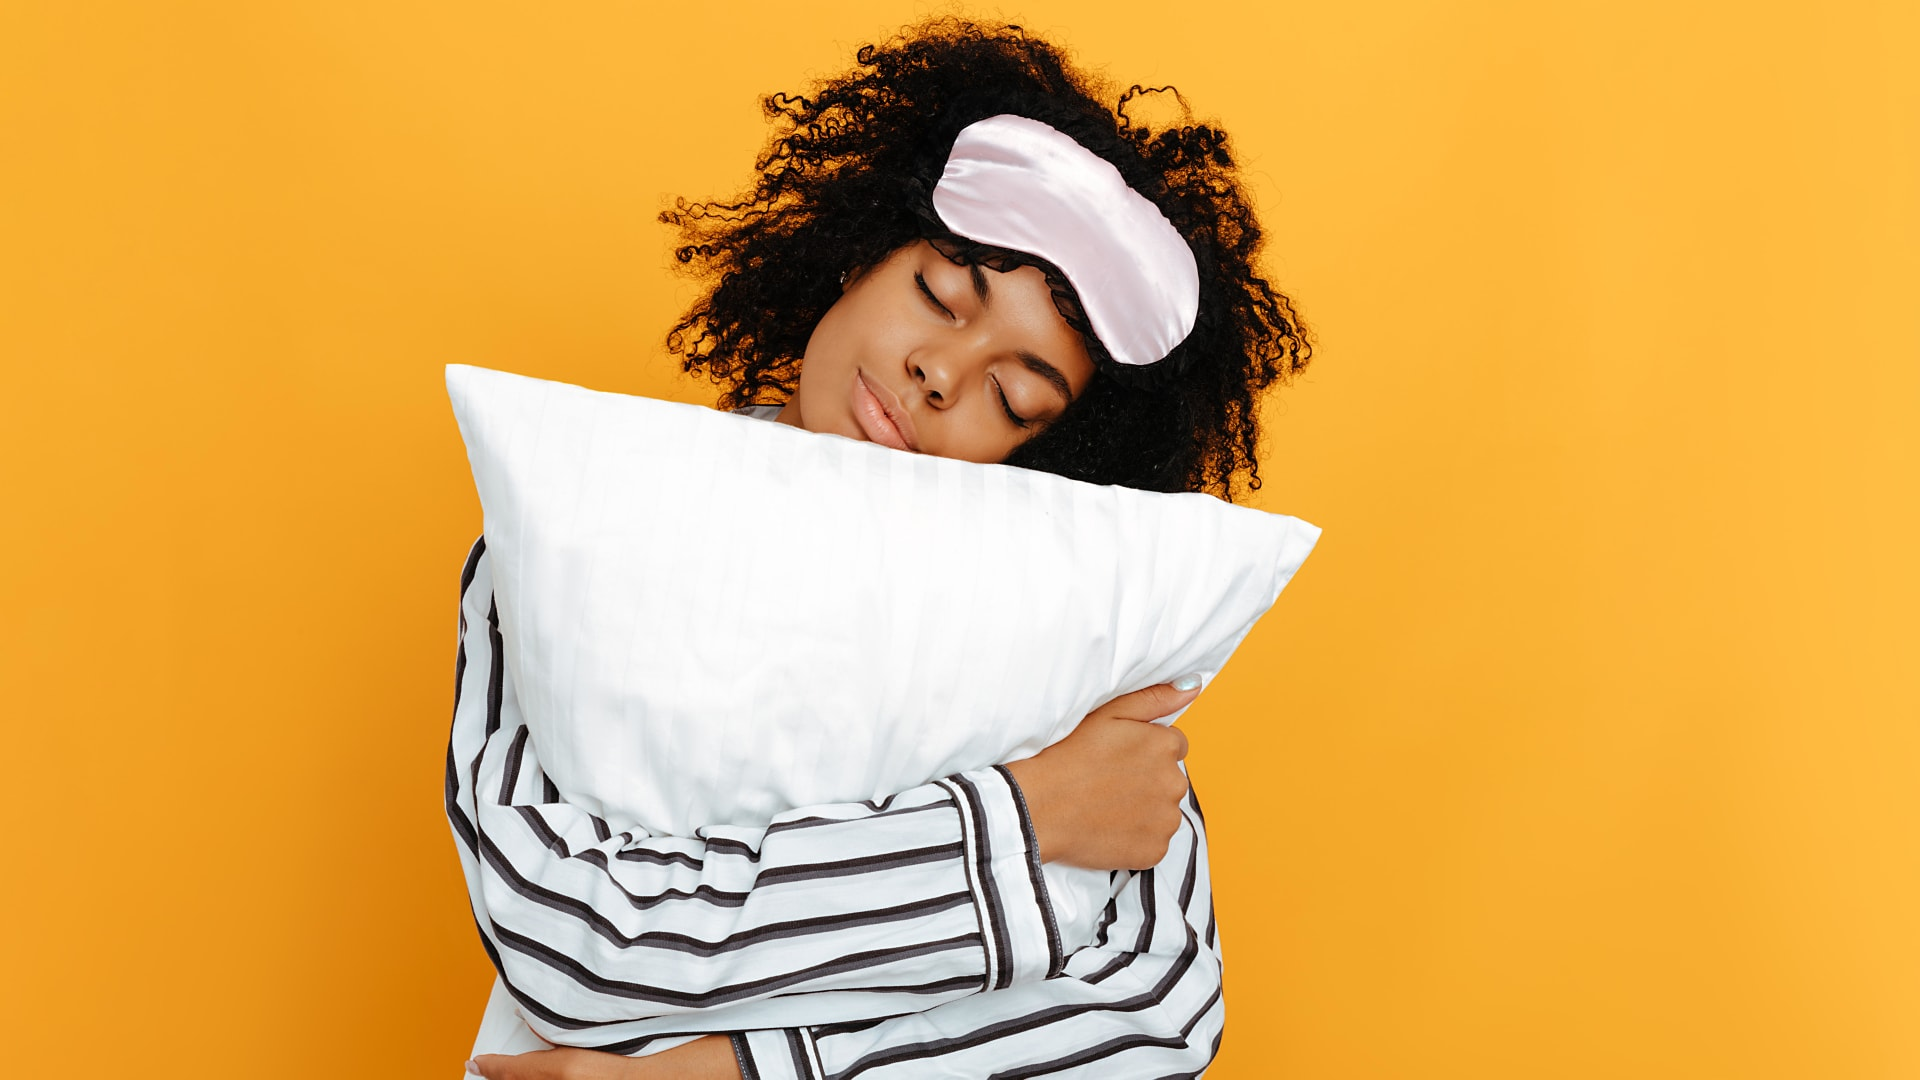 5 Great Gifts for Big Dreamers in Need of a Good Night's Rest